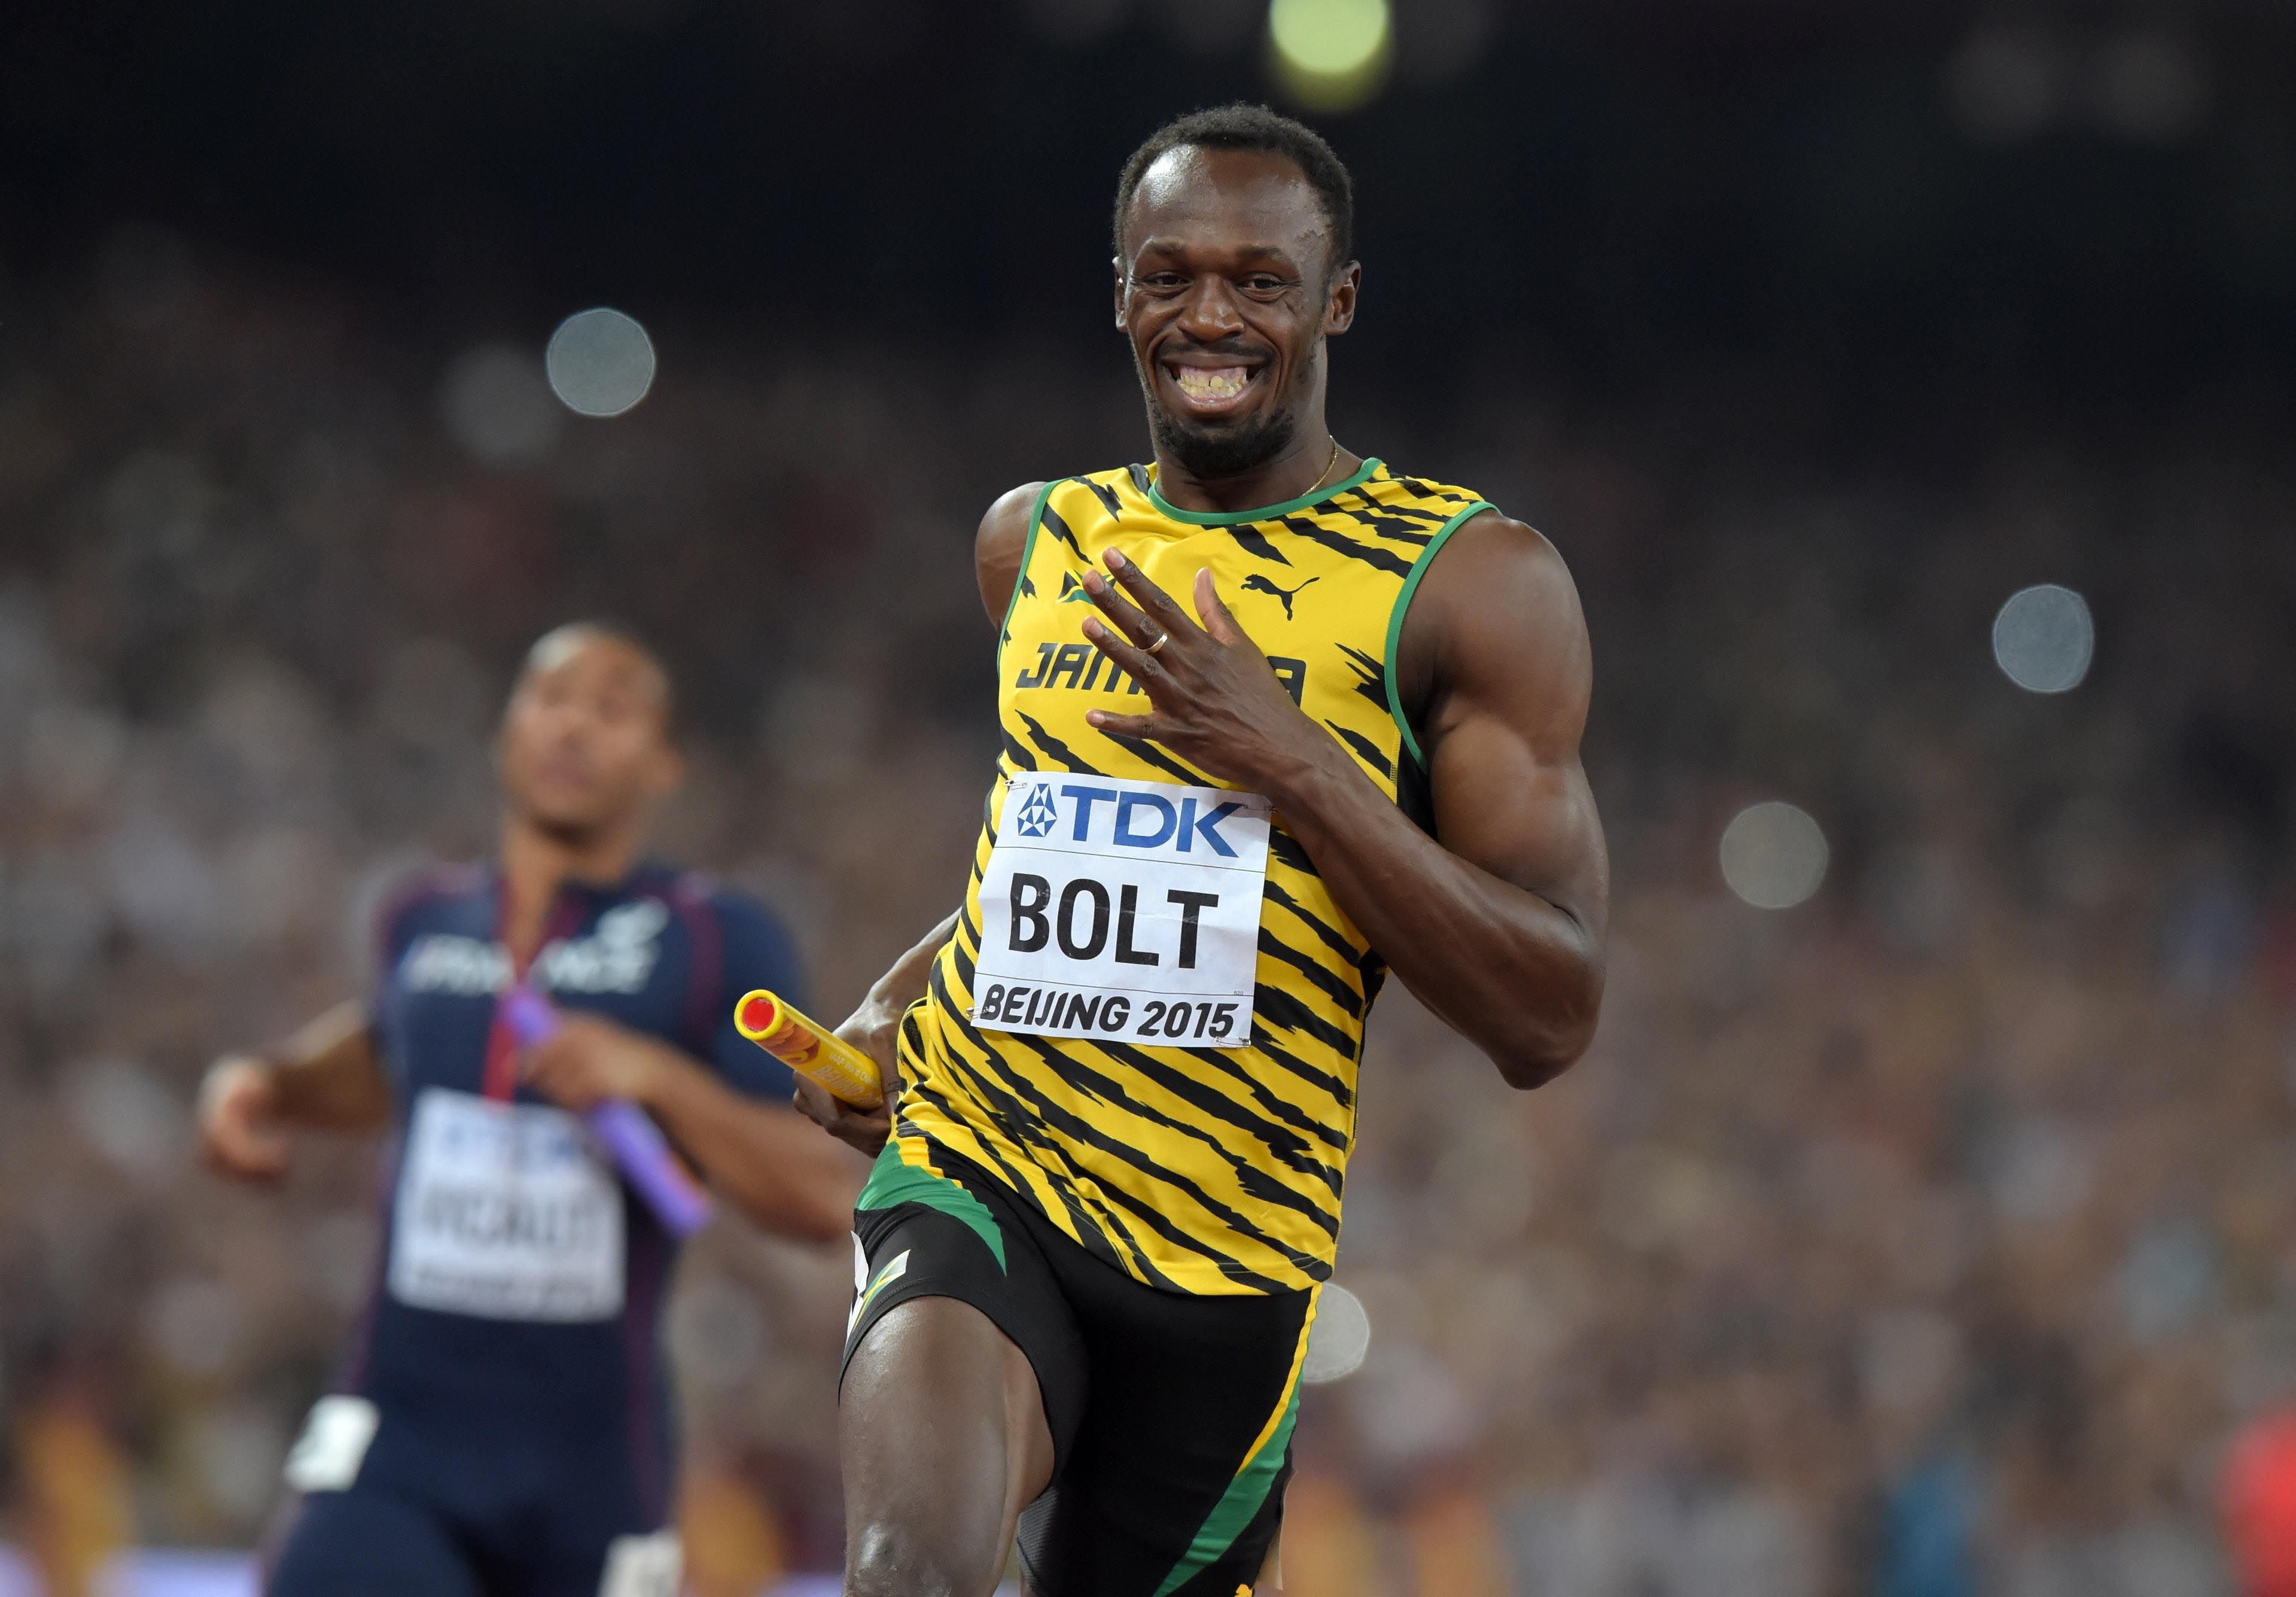 Usain Bolt confident to win 'Triple-Triple' Gold at Rio Olympics 2016